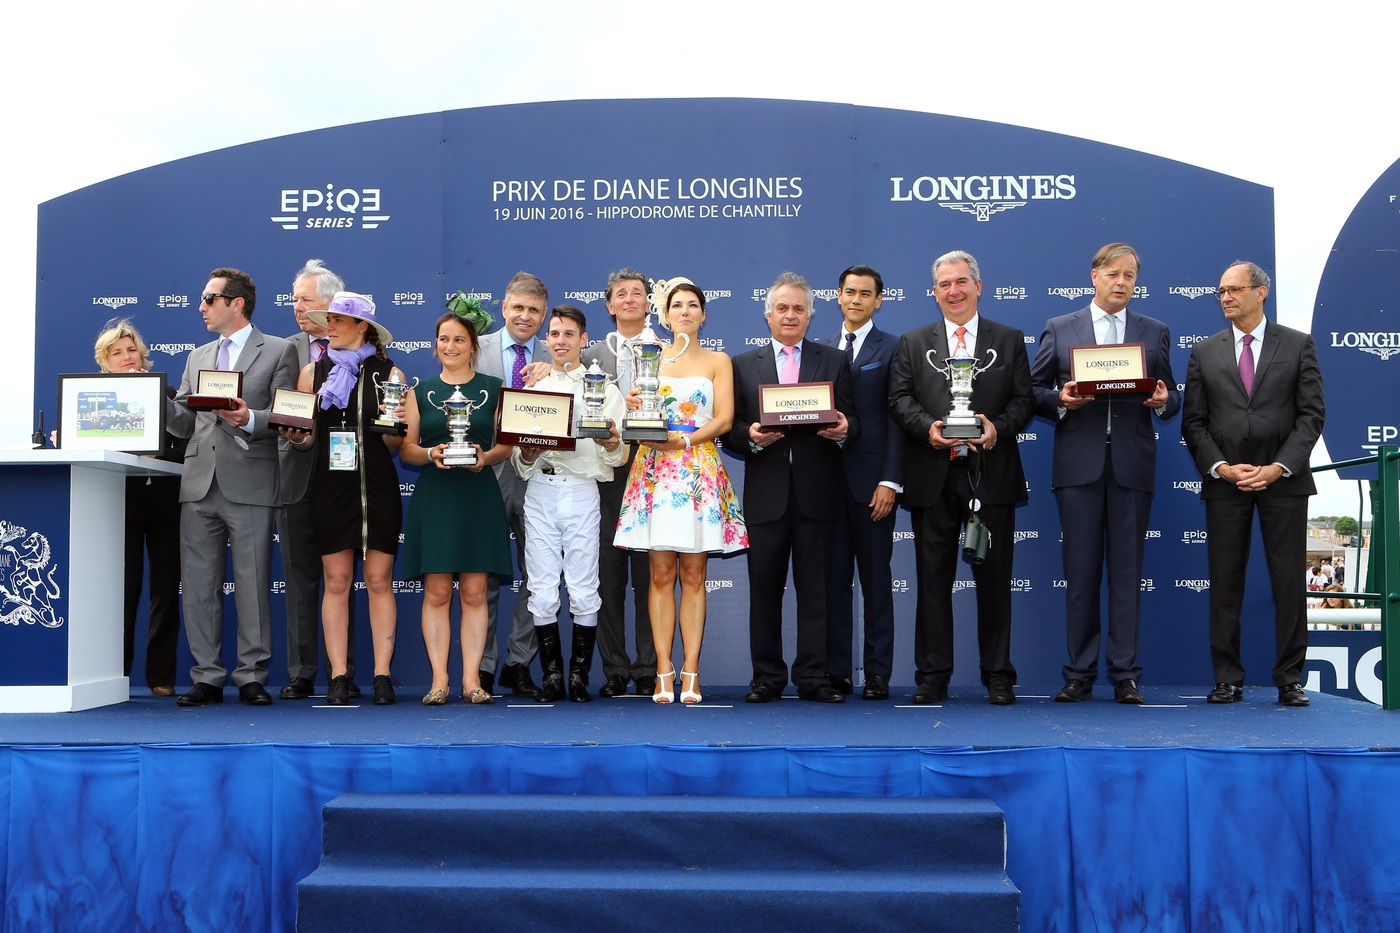 Longines Flat Racing Event: La Cressonnière is 2016 Prix de Diane Longines champion 5